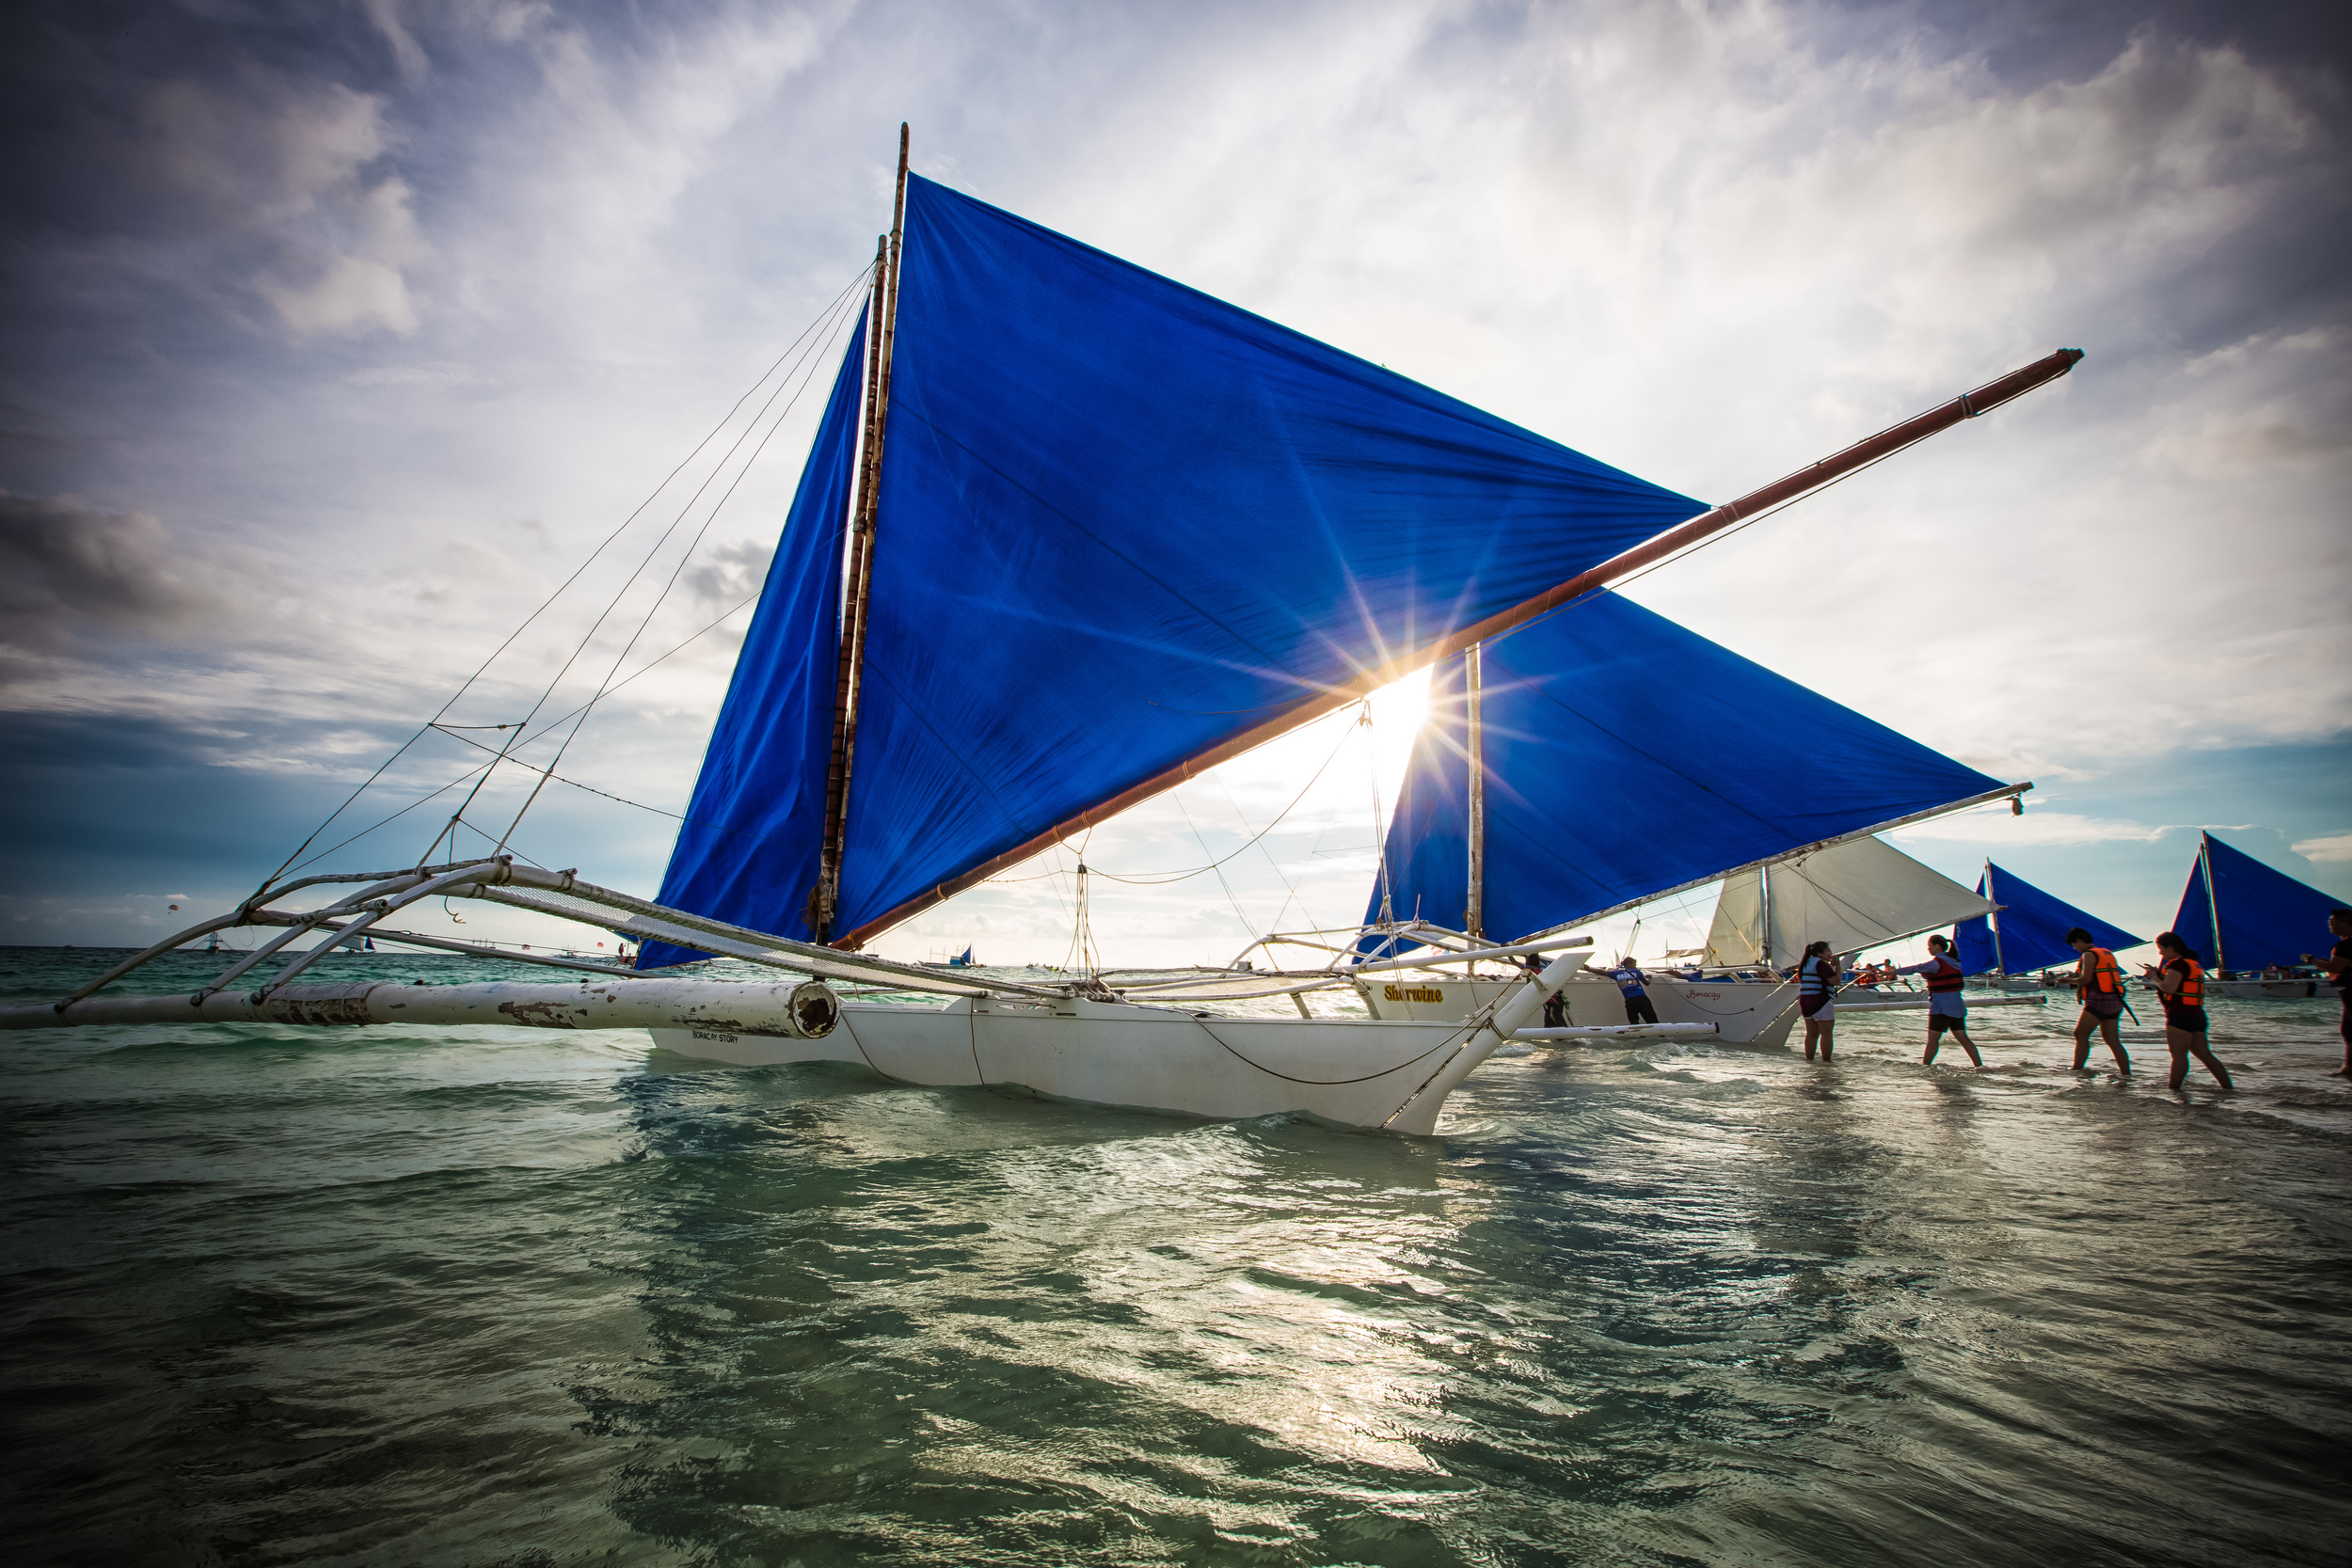 Boracay's iconic Paraw Sailboats.